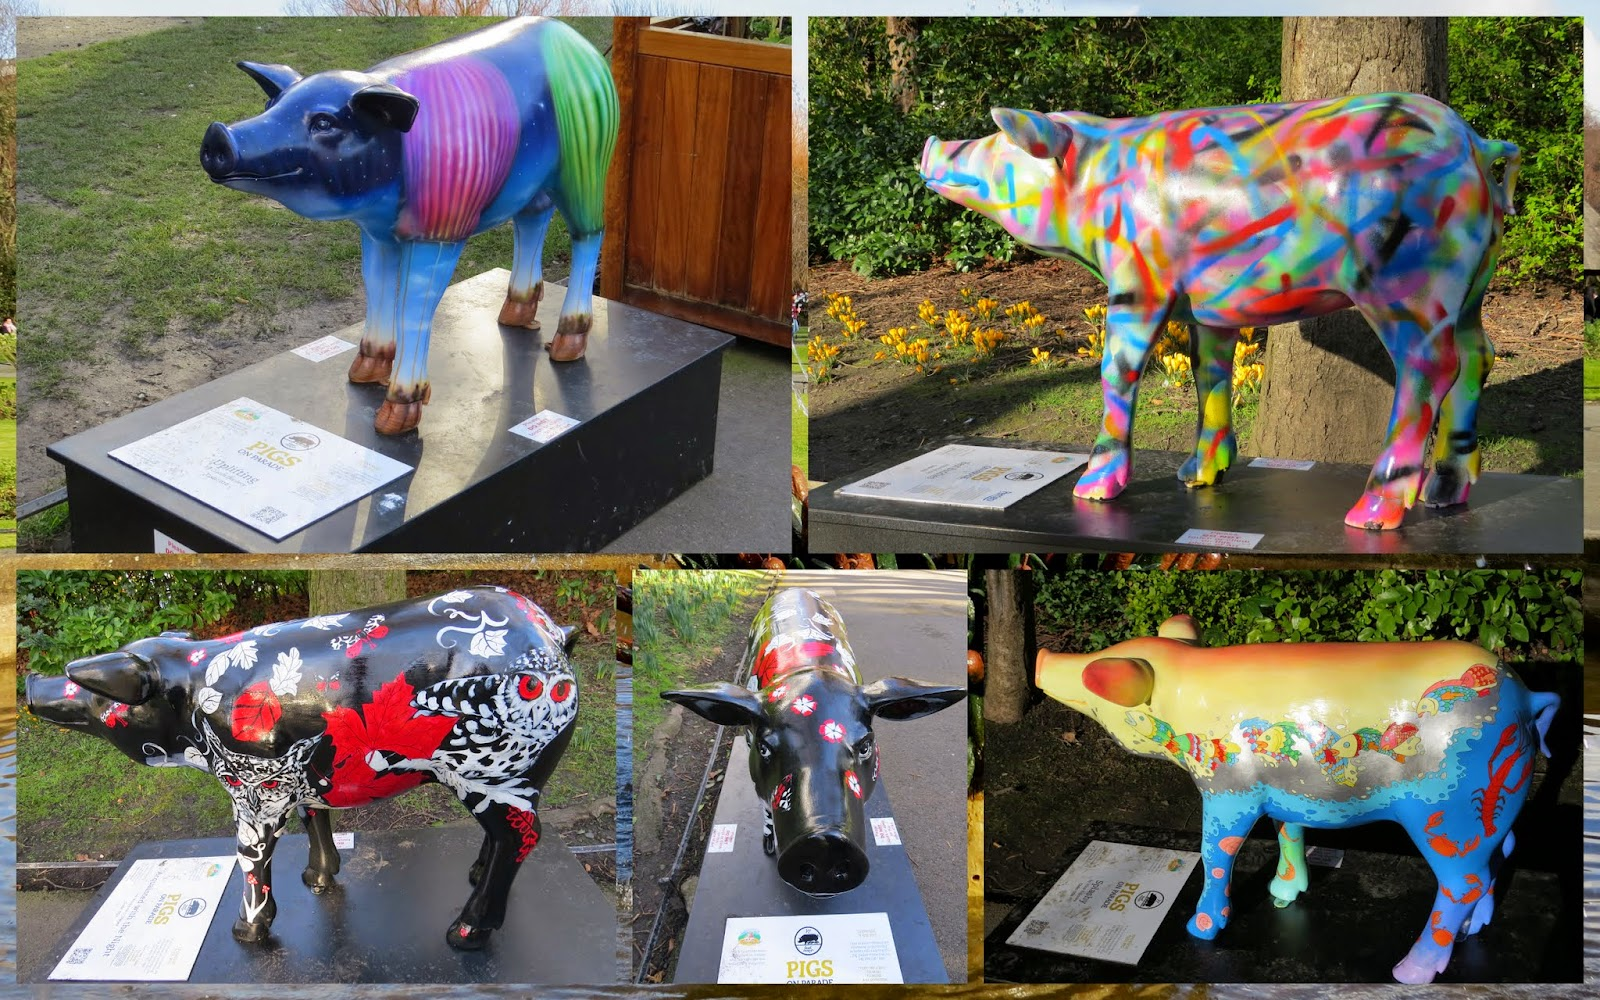 #pigsonparade in Dublin in St. Stephen's Green